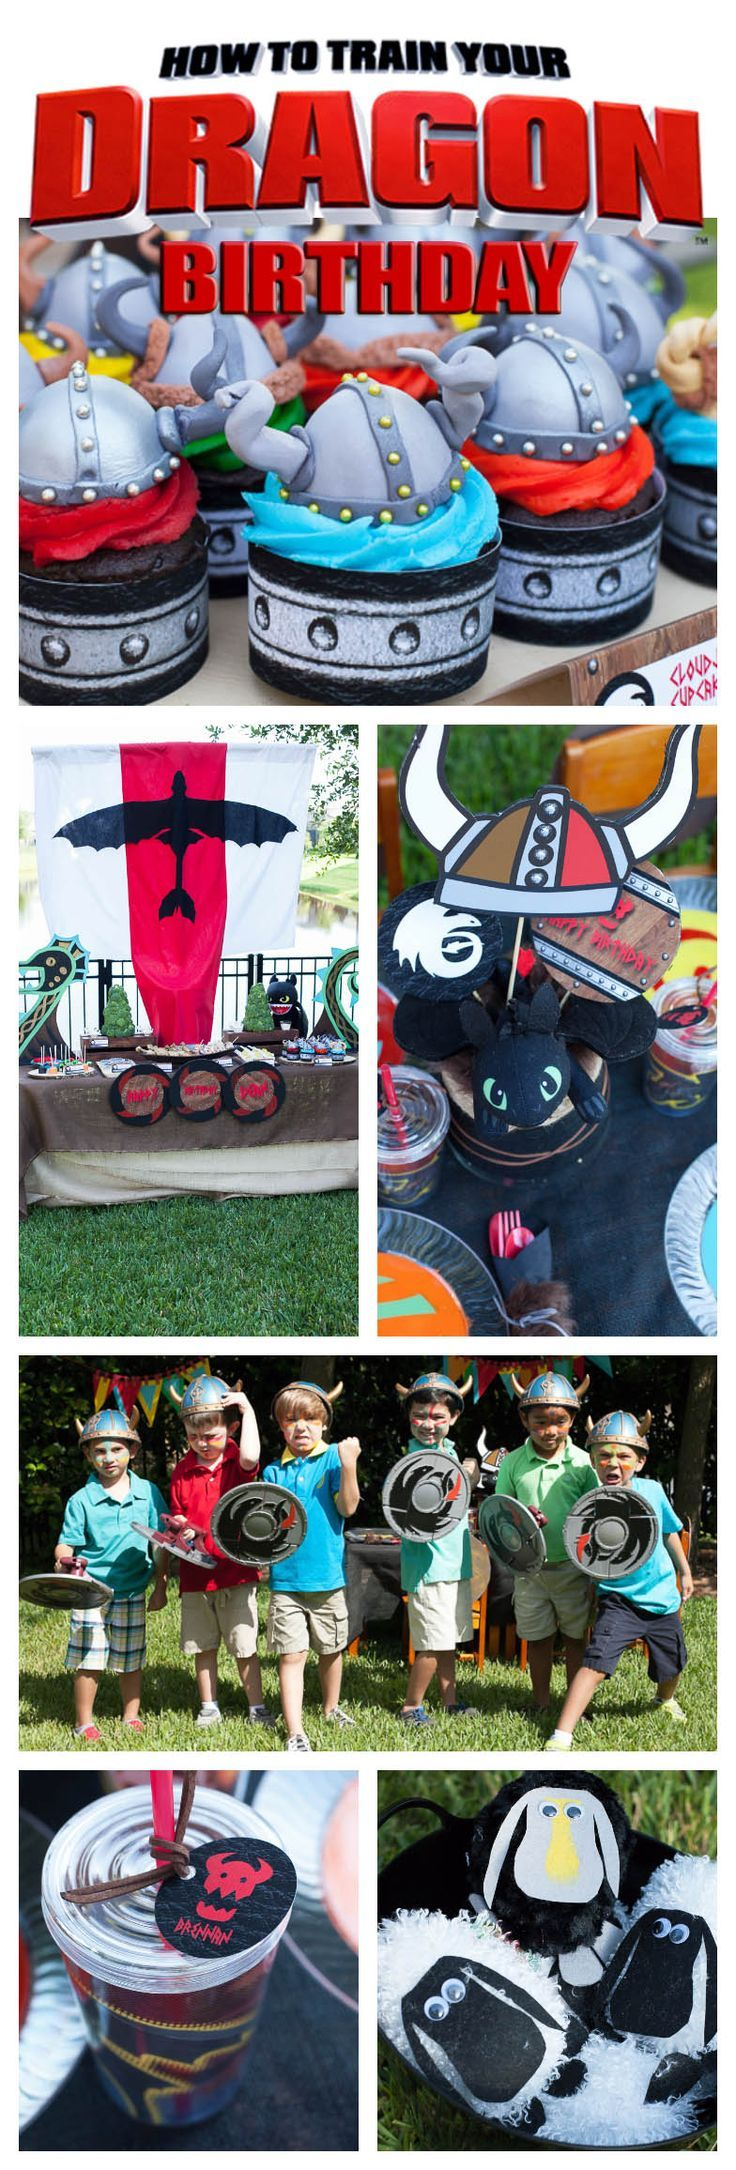 Eat Fried Worms How To Train Your Dragon Birthday Party Part Ii Party Games